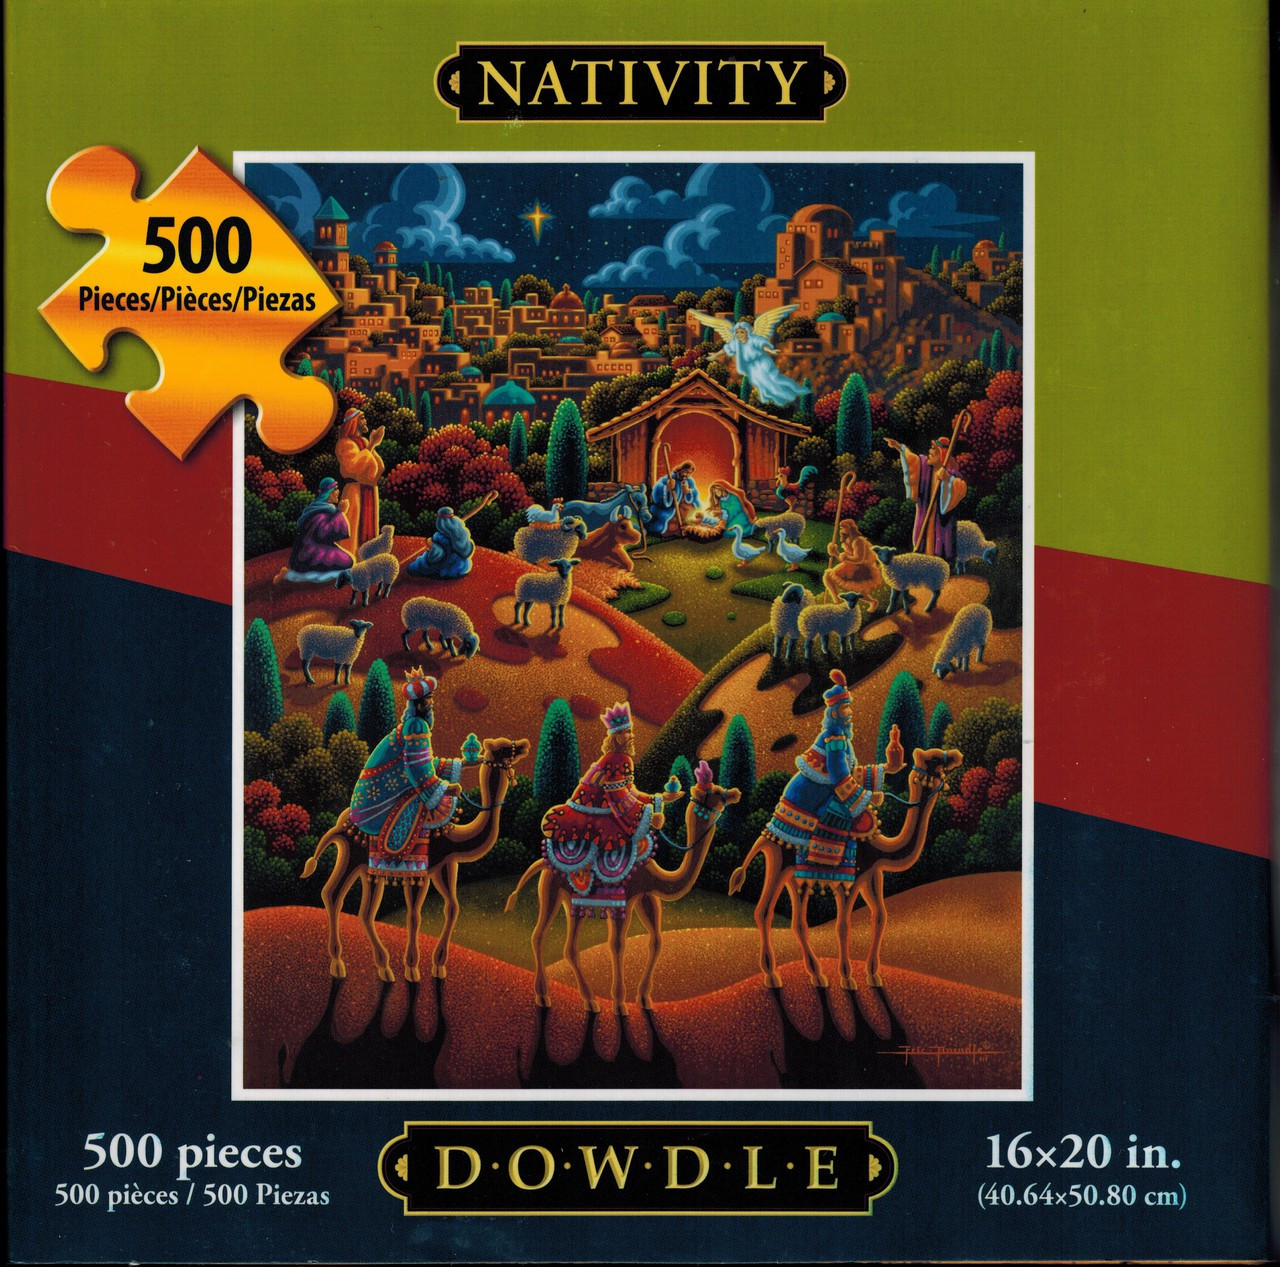 Nativity 500 piece jigsaw puzzle